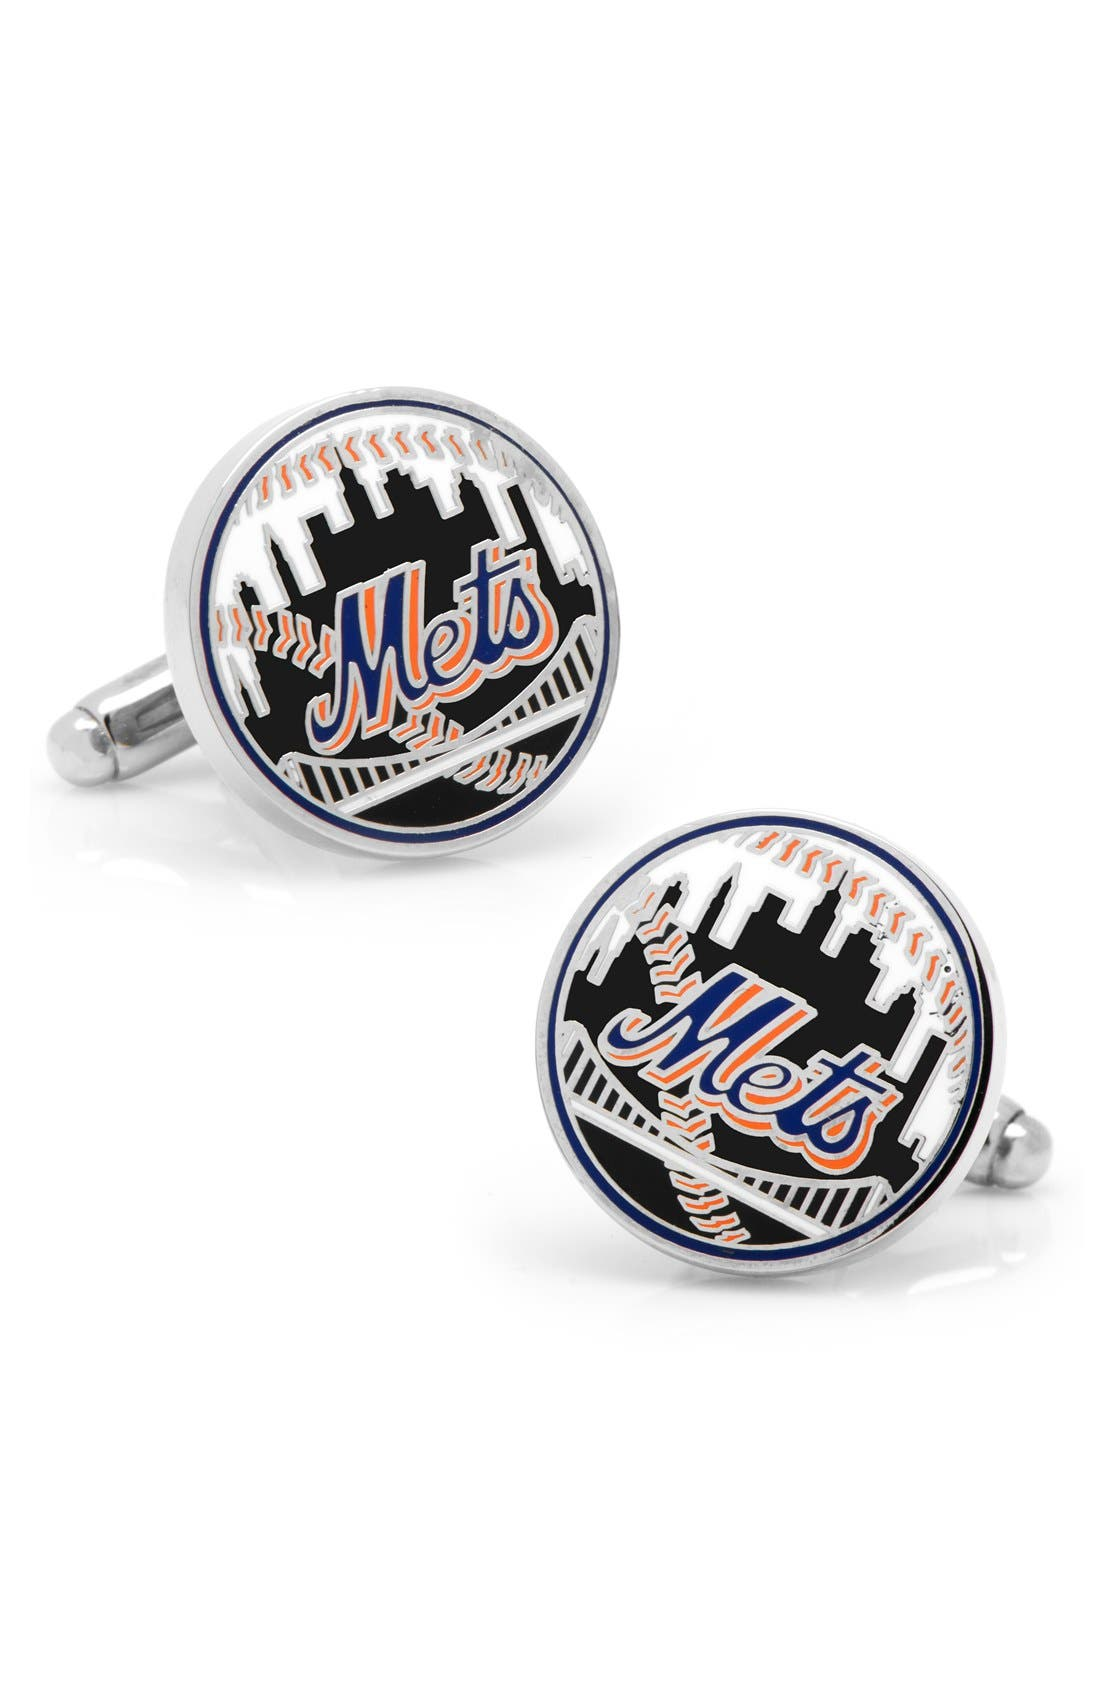 New York Mets Cuff Links,                             Main thumbnail 1, color,                             001